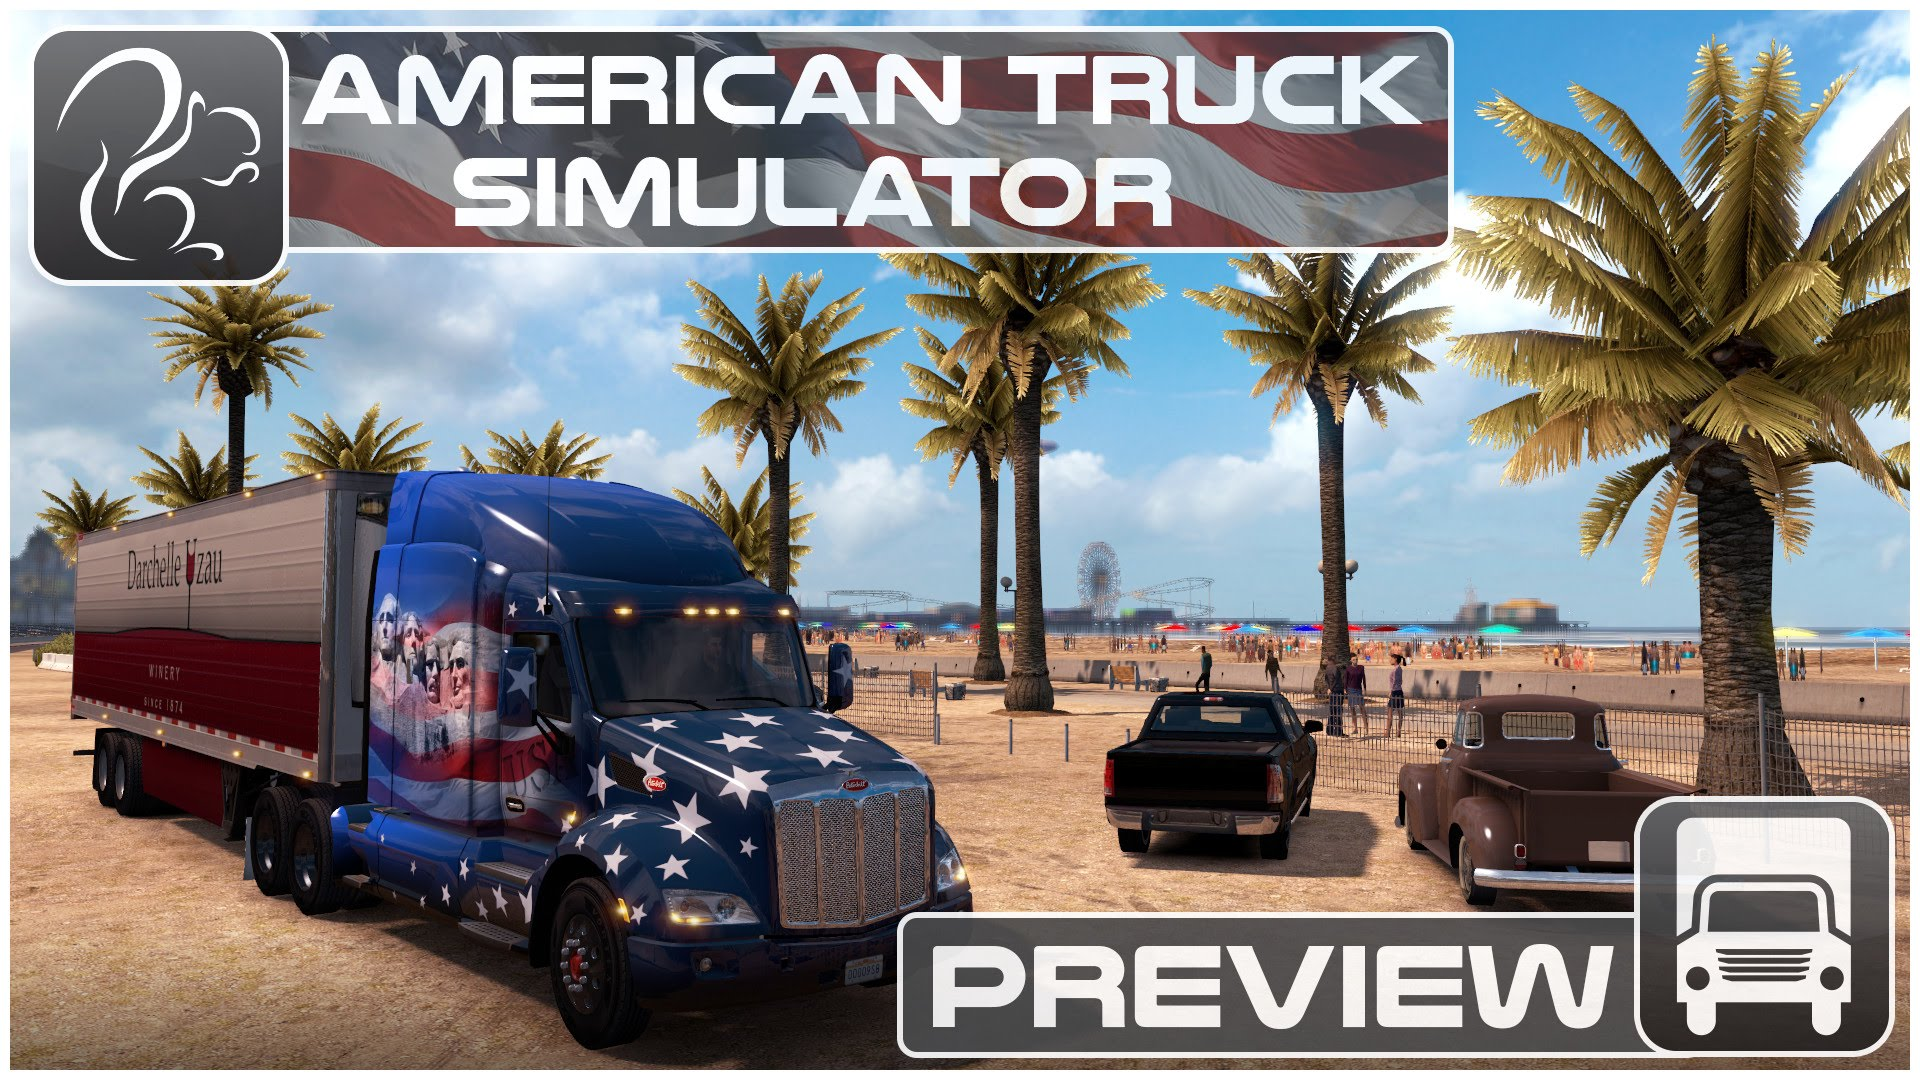 American Truck Simulator - Preview and Information (Video)